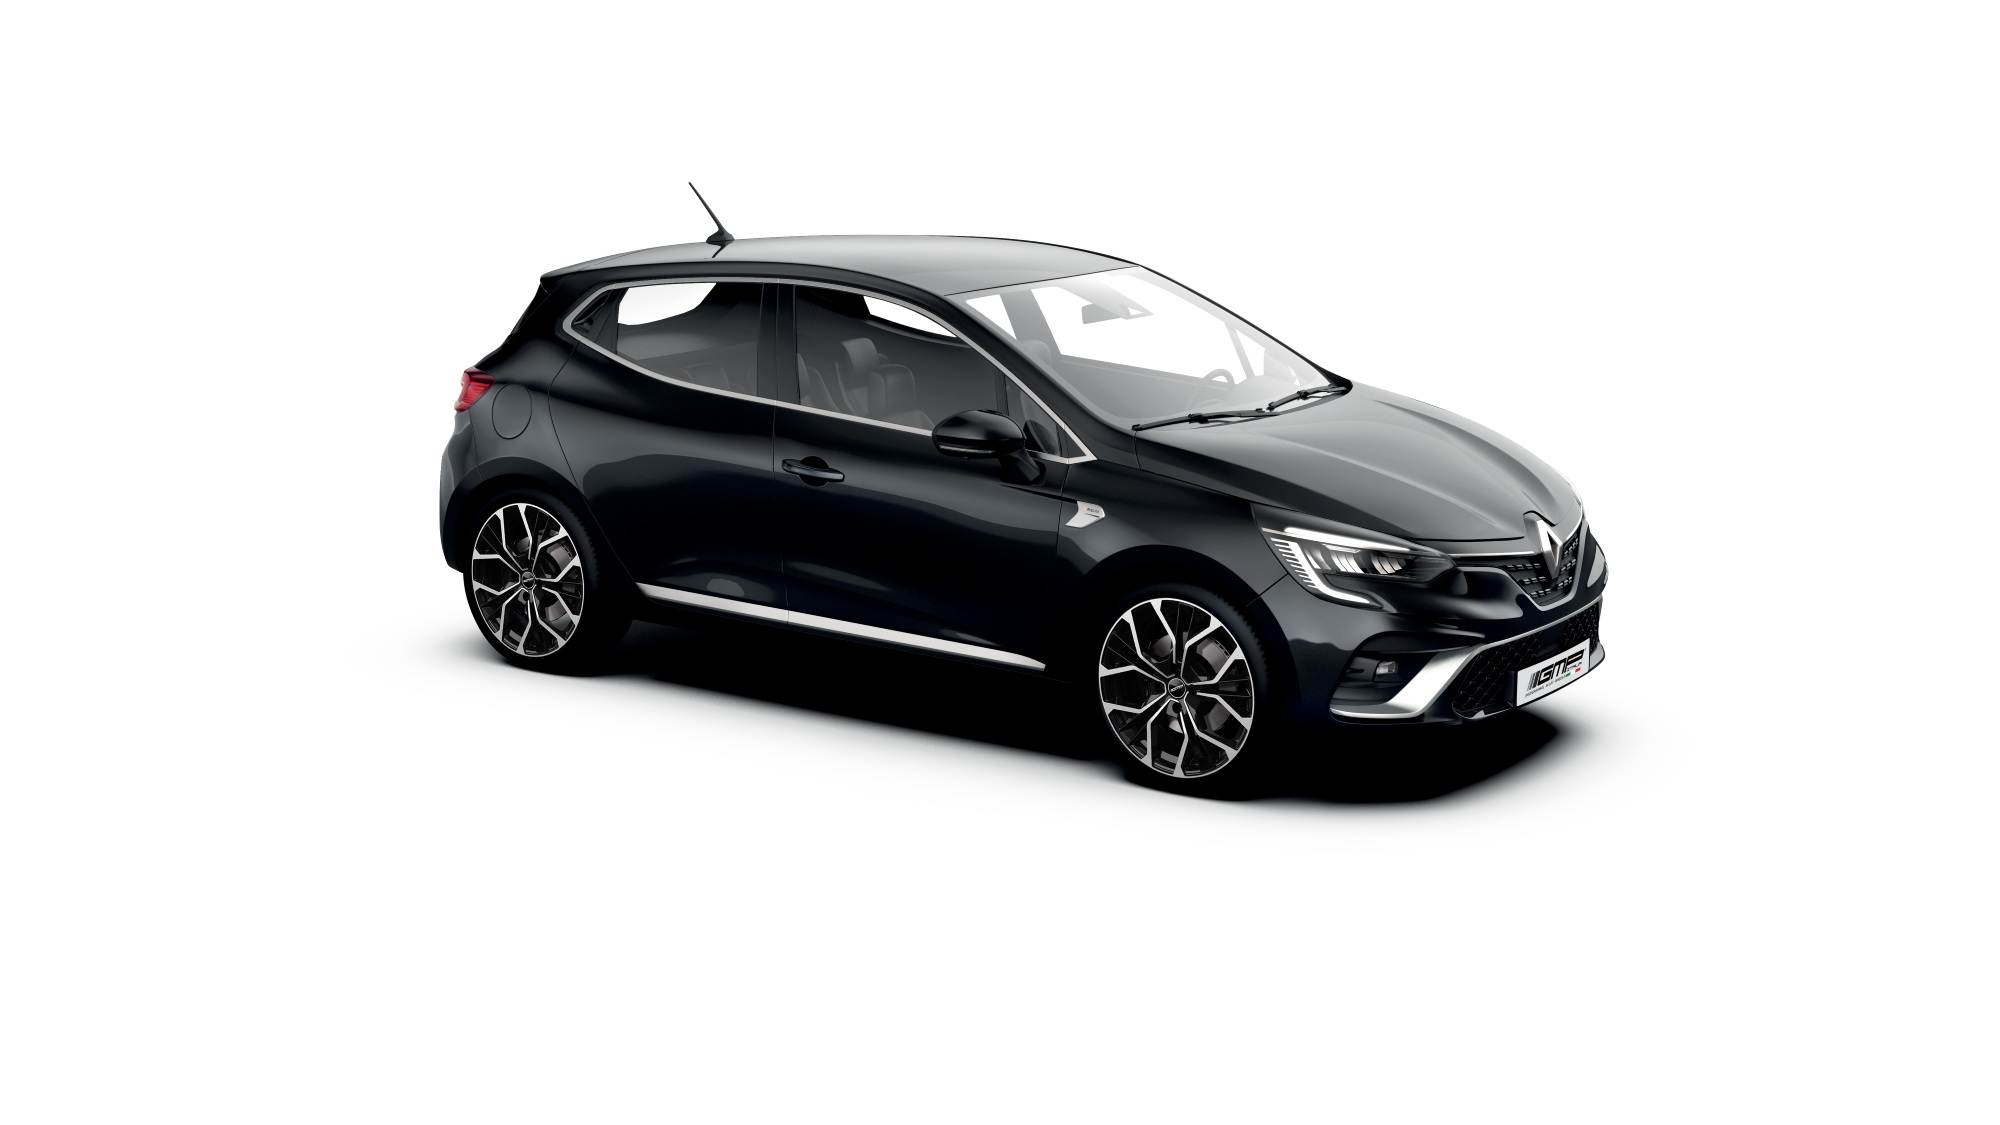 MATISSE Black Diamond RENAULT CLIO